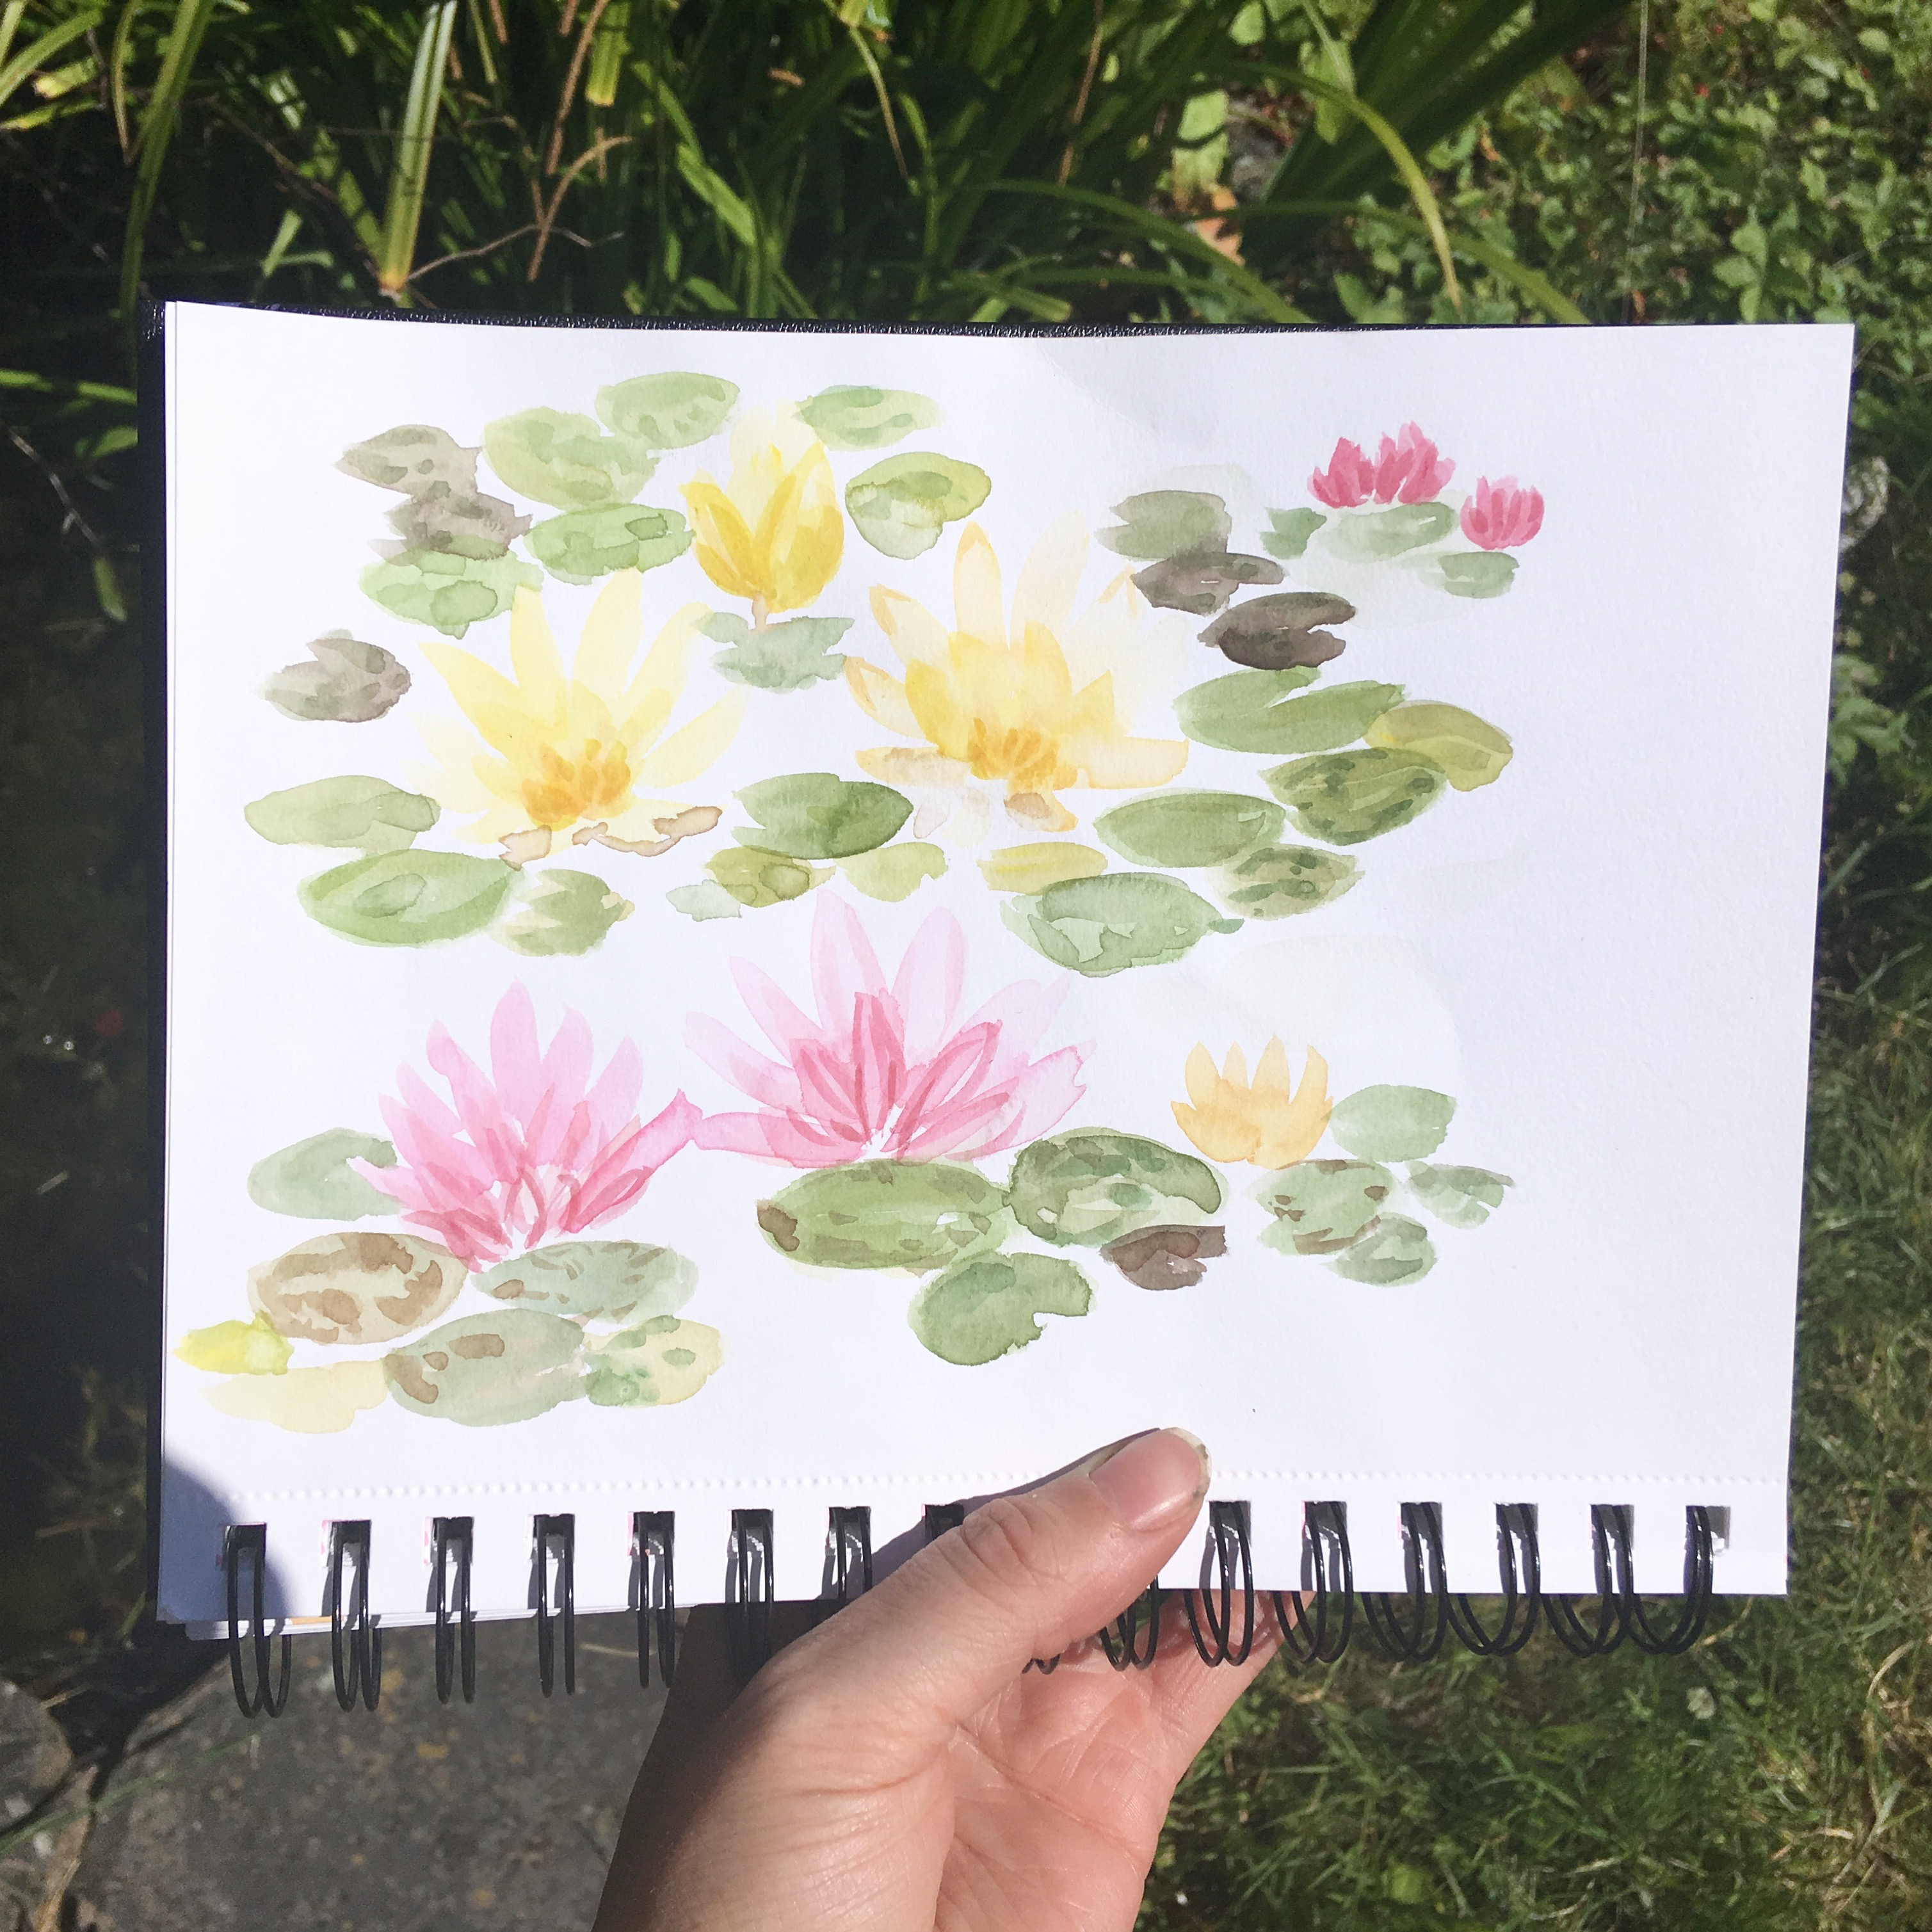 inspired by oxford botanical gardens